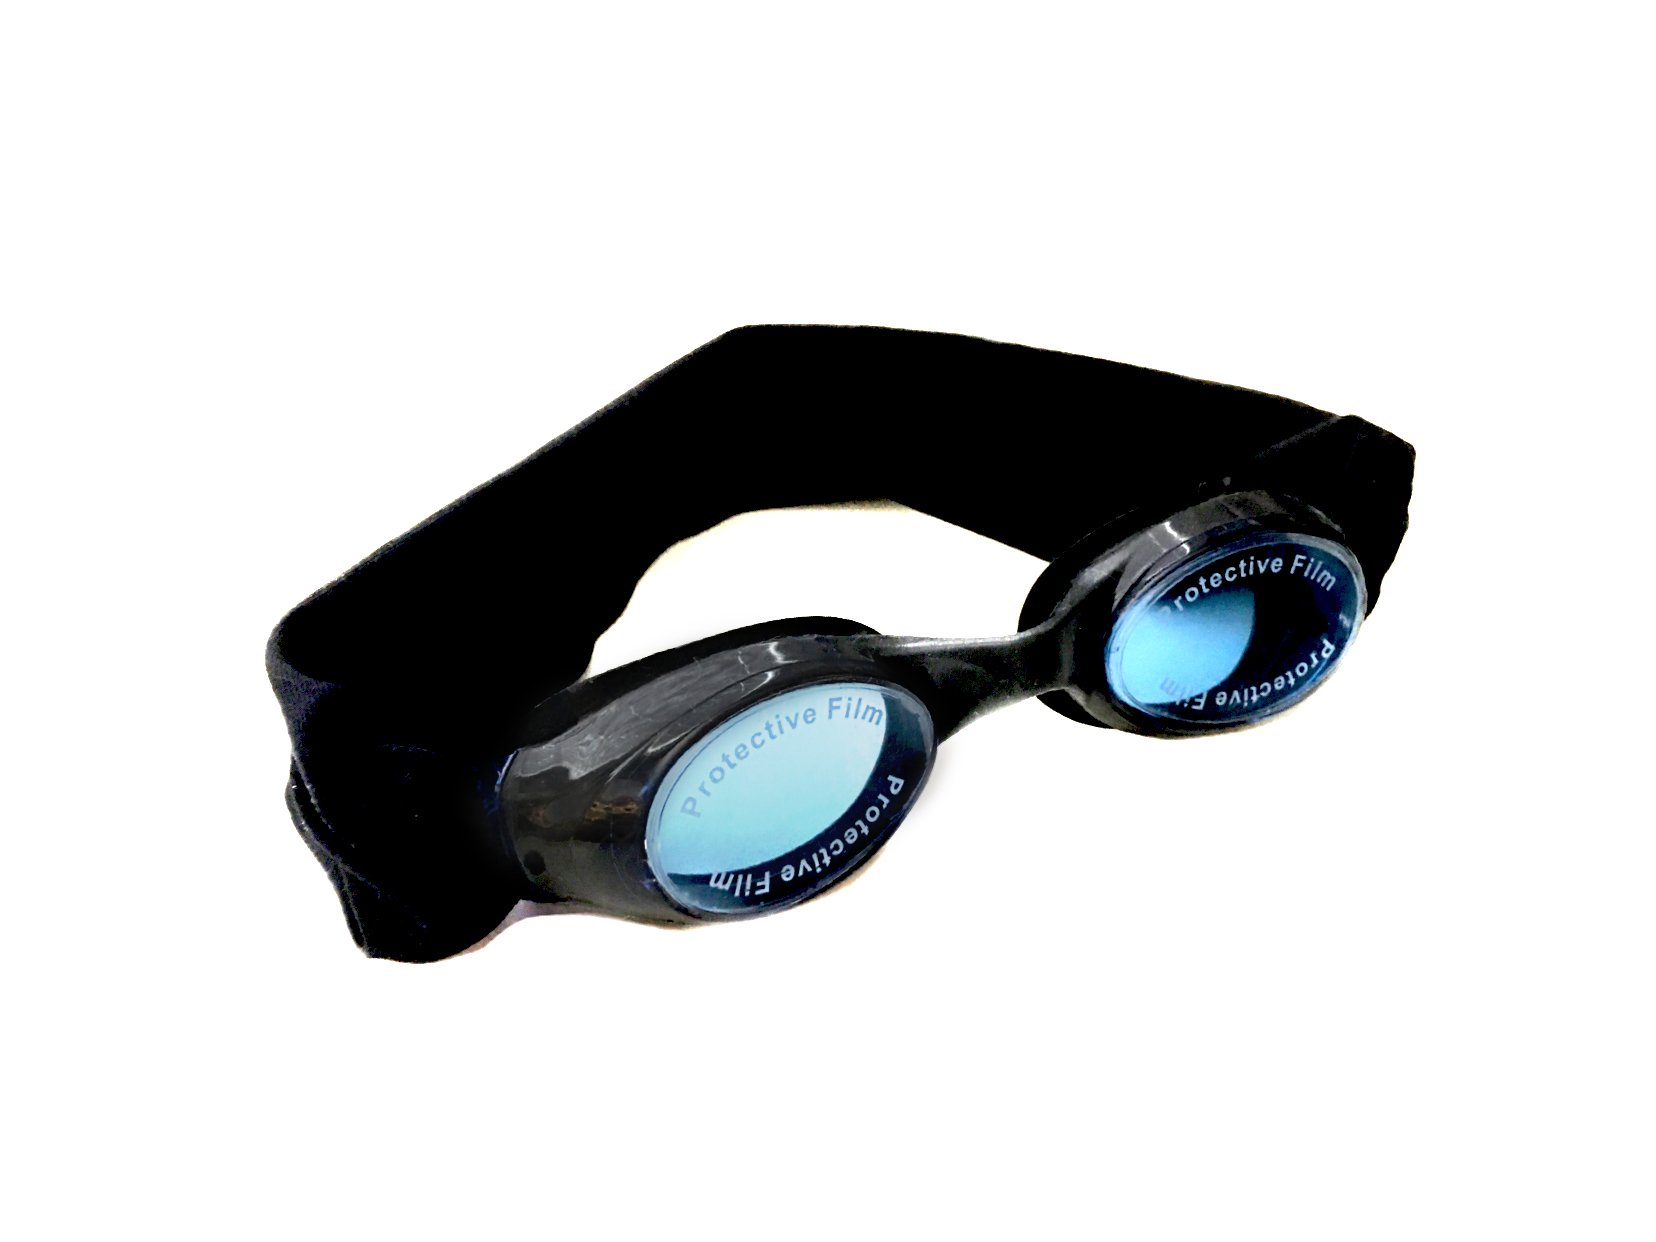 Splash Midnight Swim Goggles - Comfortable, Fashionable, Fun - Fits Kids & Adults - Won't Pull Your Hair - Easy to Use - High Visibility Anti-Fog Lenses - Patent Pending